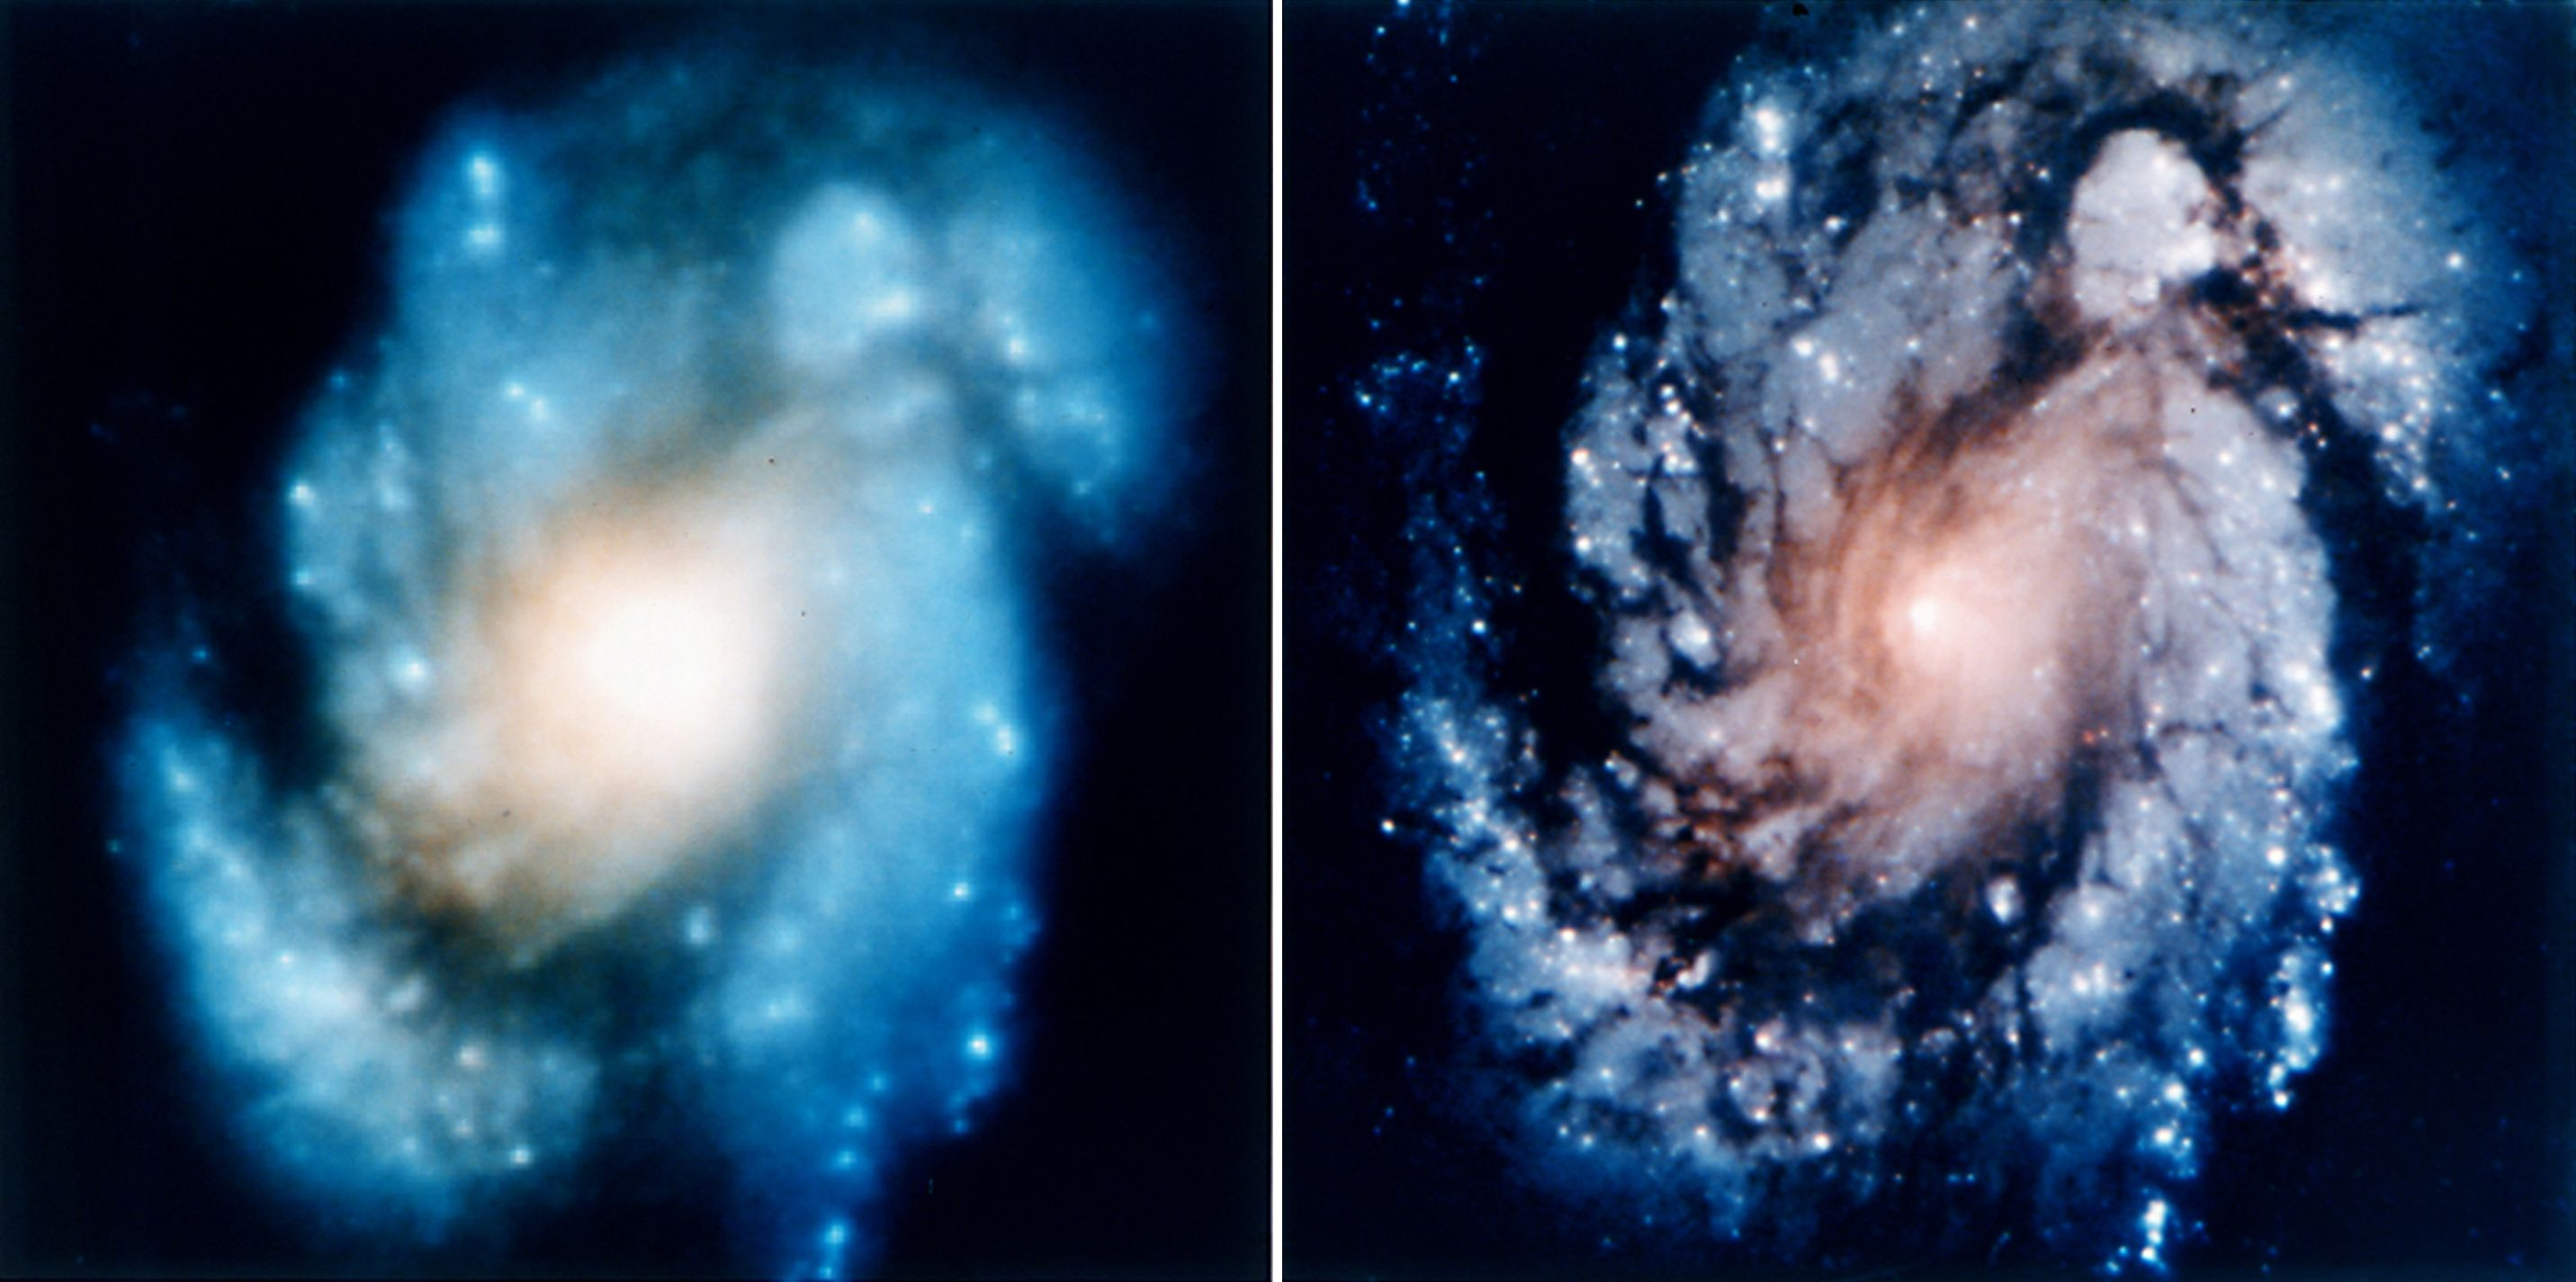 HST images of M100 before and after installation COSTAR